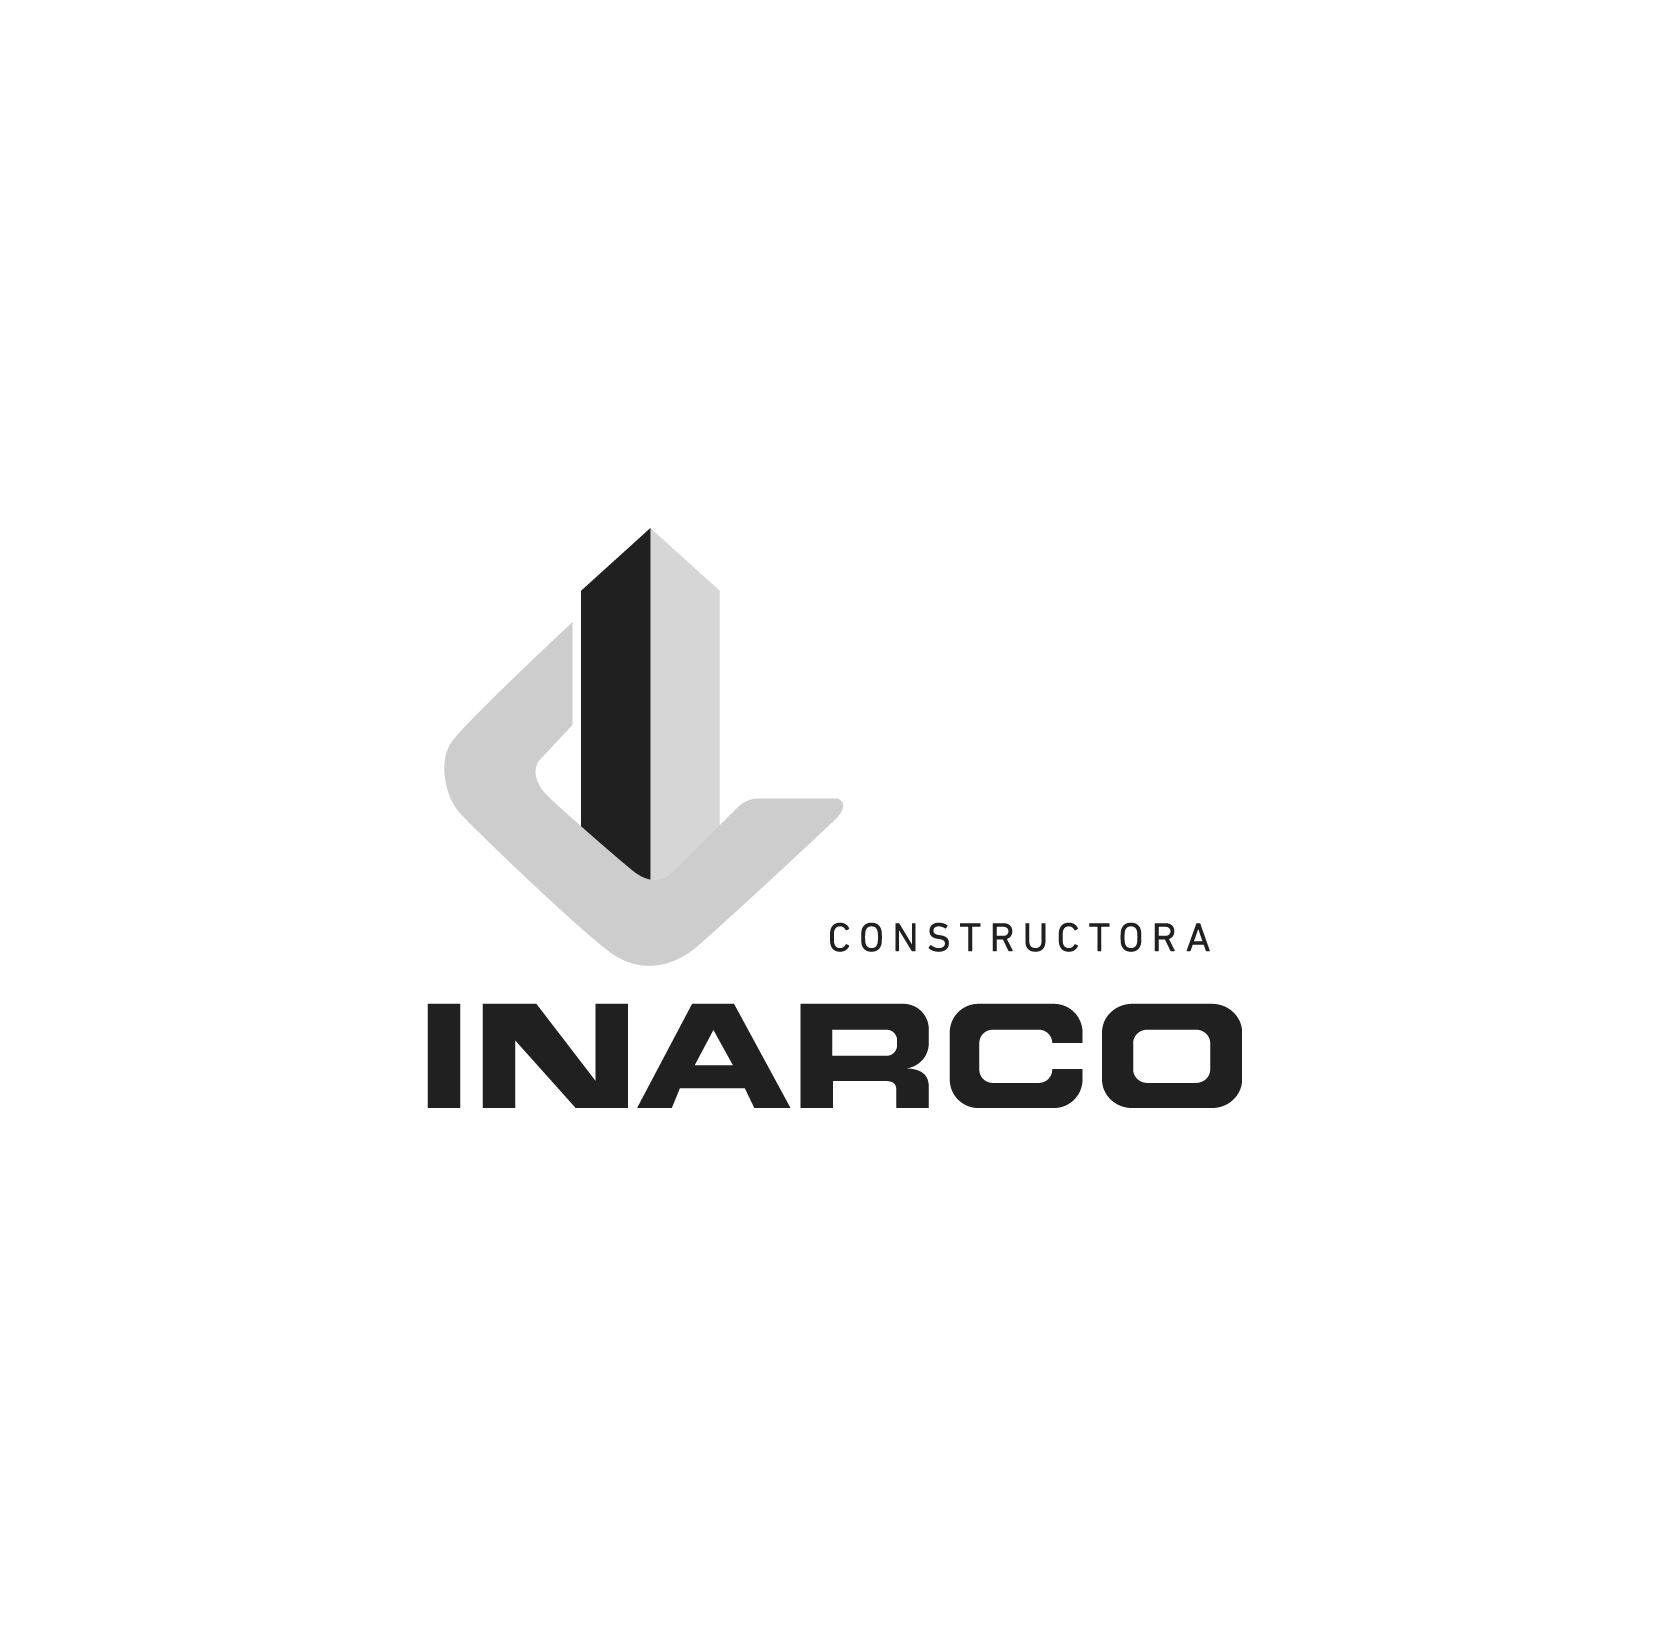 Inarco@4x.png